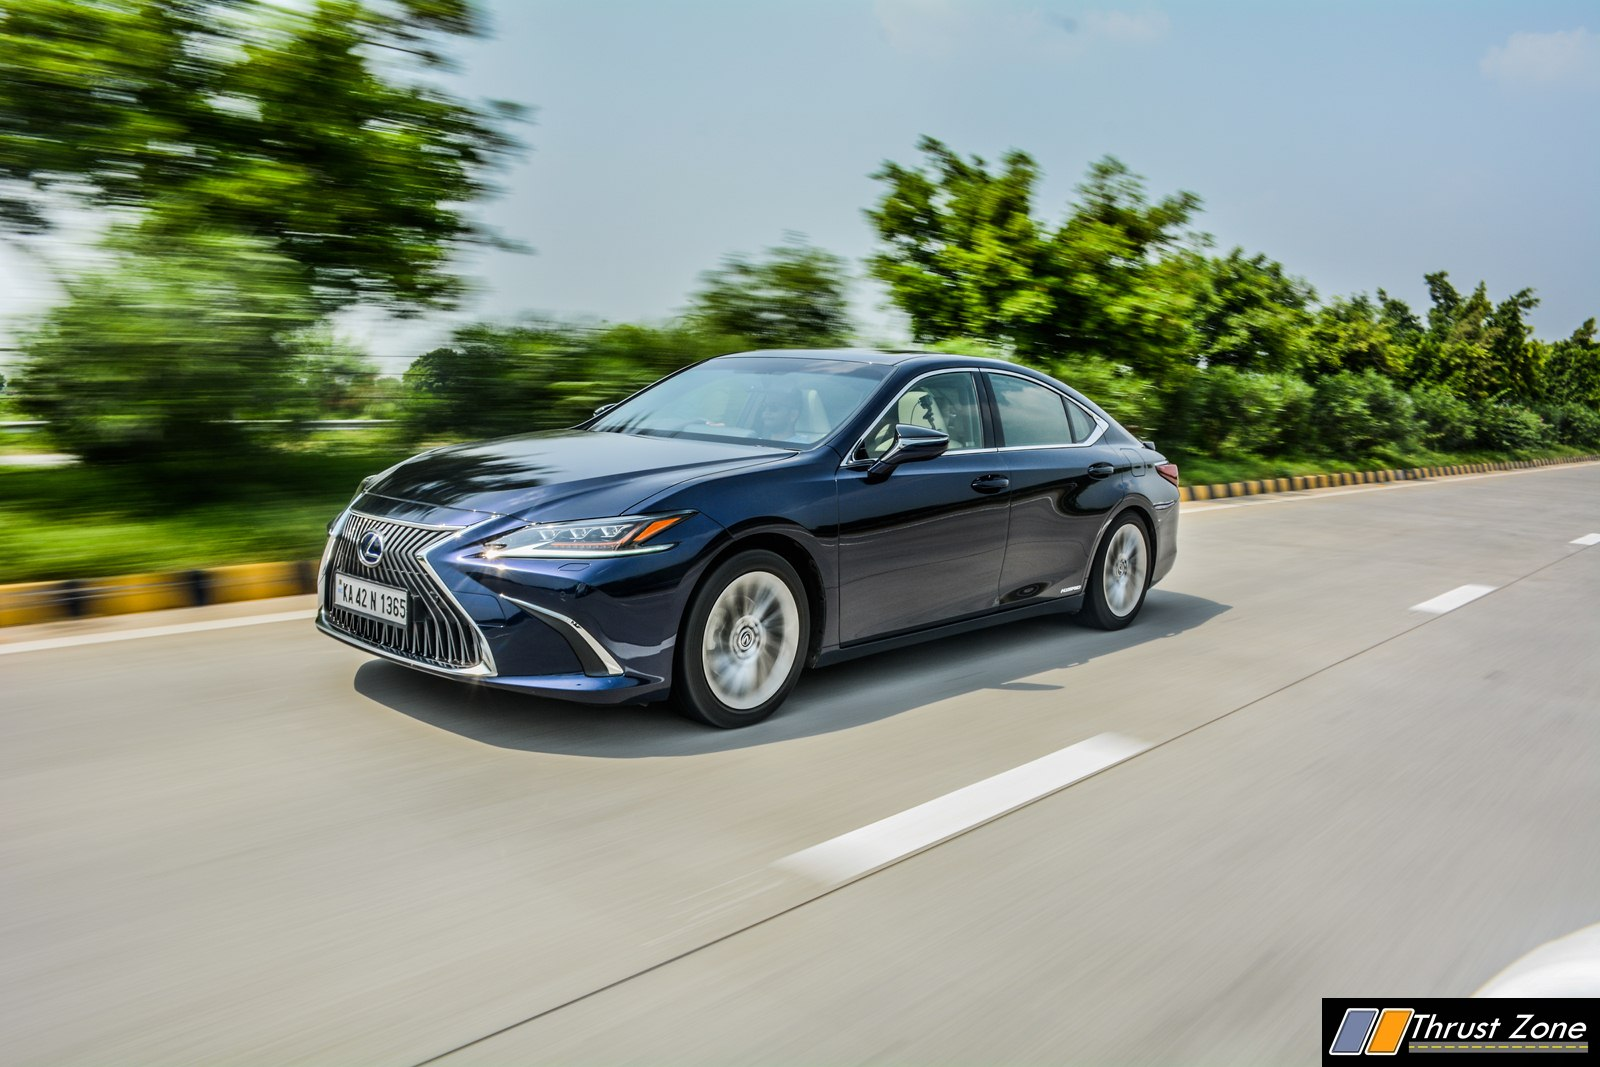 https://www.thrustzone.com/wp-content/uploads/2018/09/2019-Lexus-ES-India-300h-Review-24.jpg